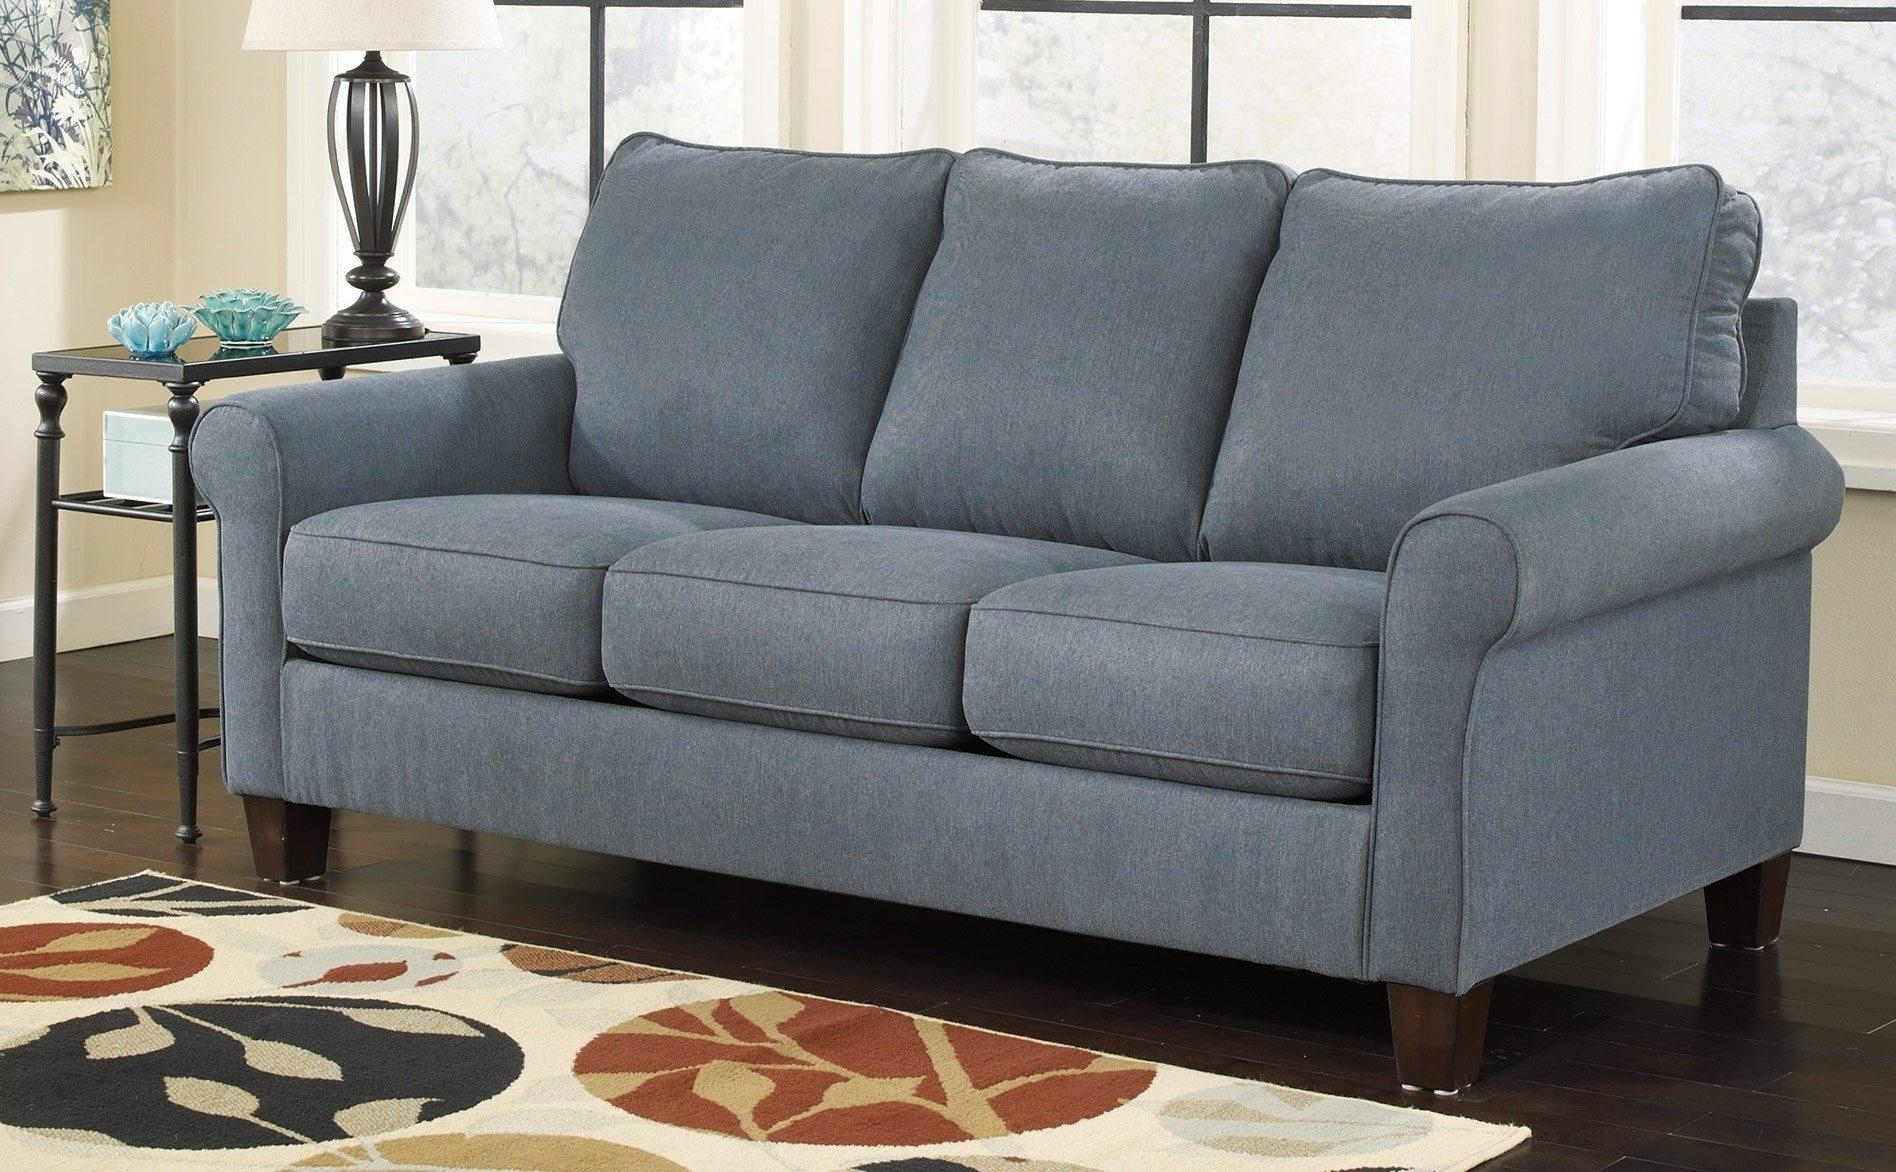 Featured Image of Sealy Sofas